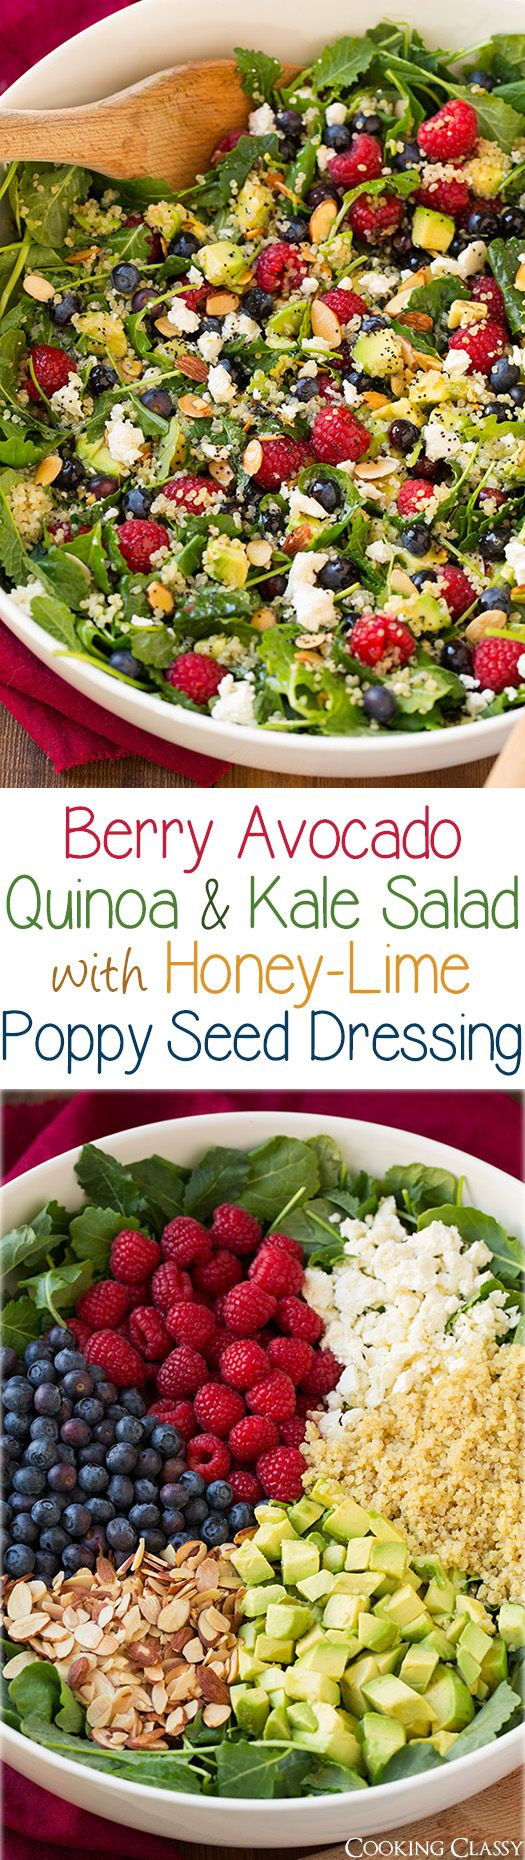 Berry Avocado Quinoa and Kale Salad with Honey-Lime Poppy Seed Dressing - a healthy superfood salad that is full of delicious flavors! You love this one!